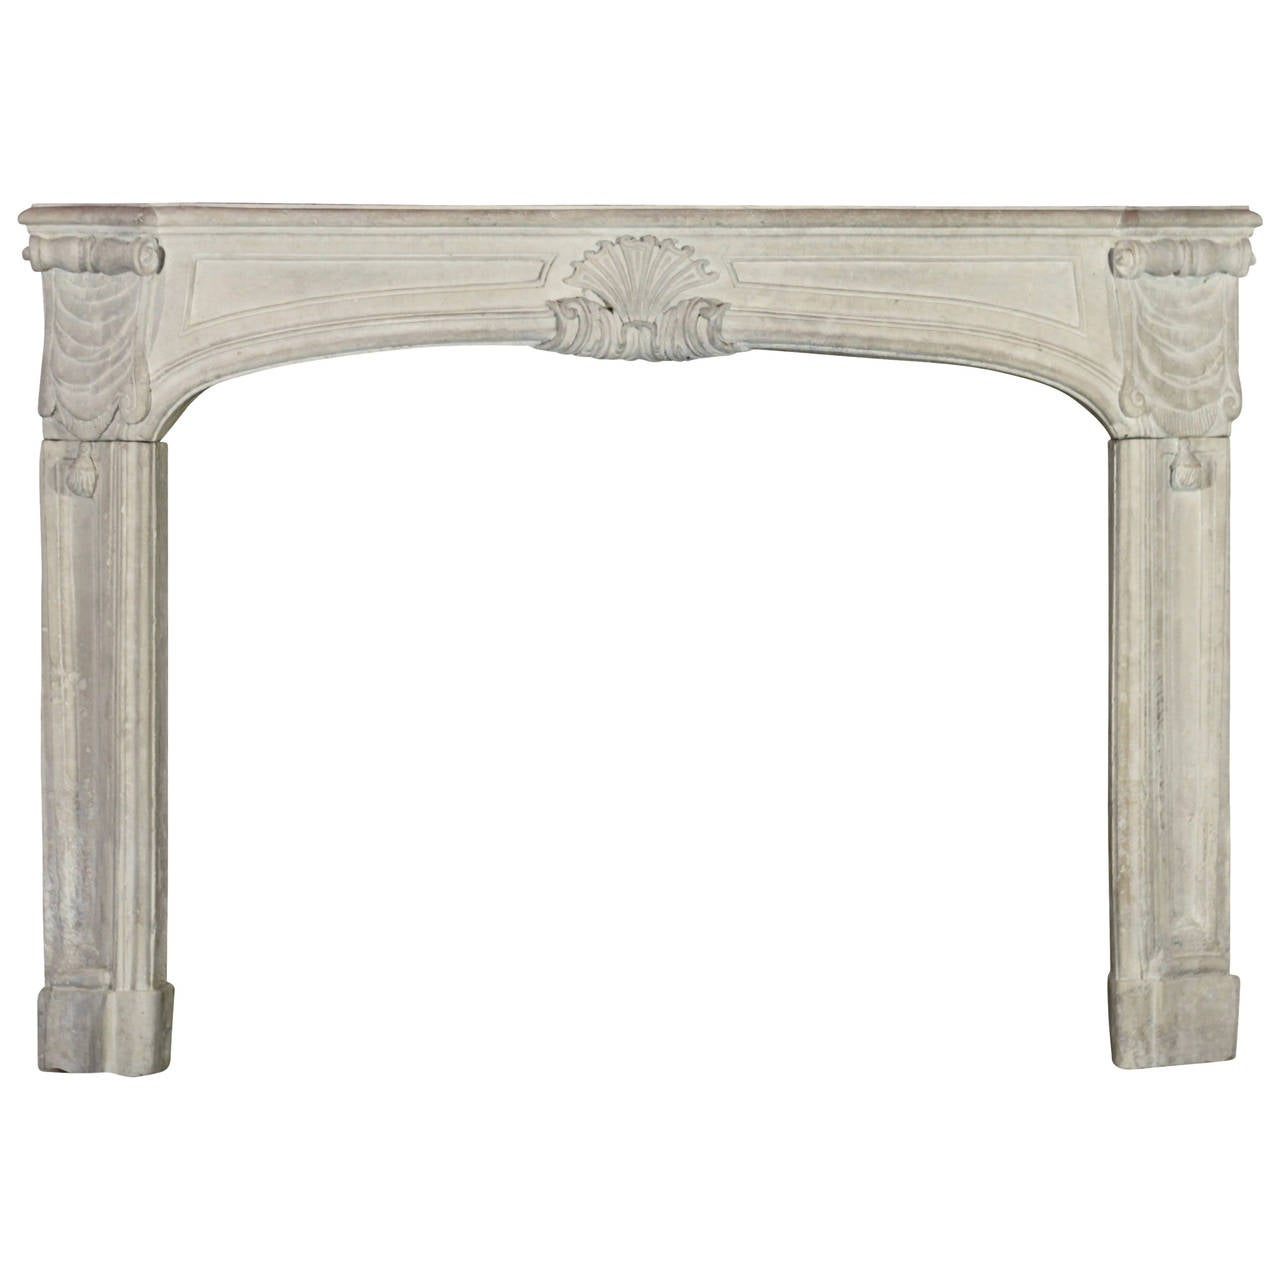 18th Century Regency Period Limestone Antique fireplace Mantel